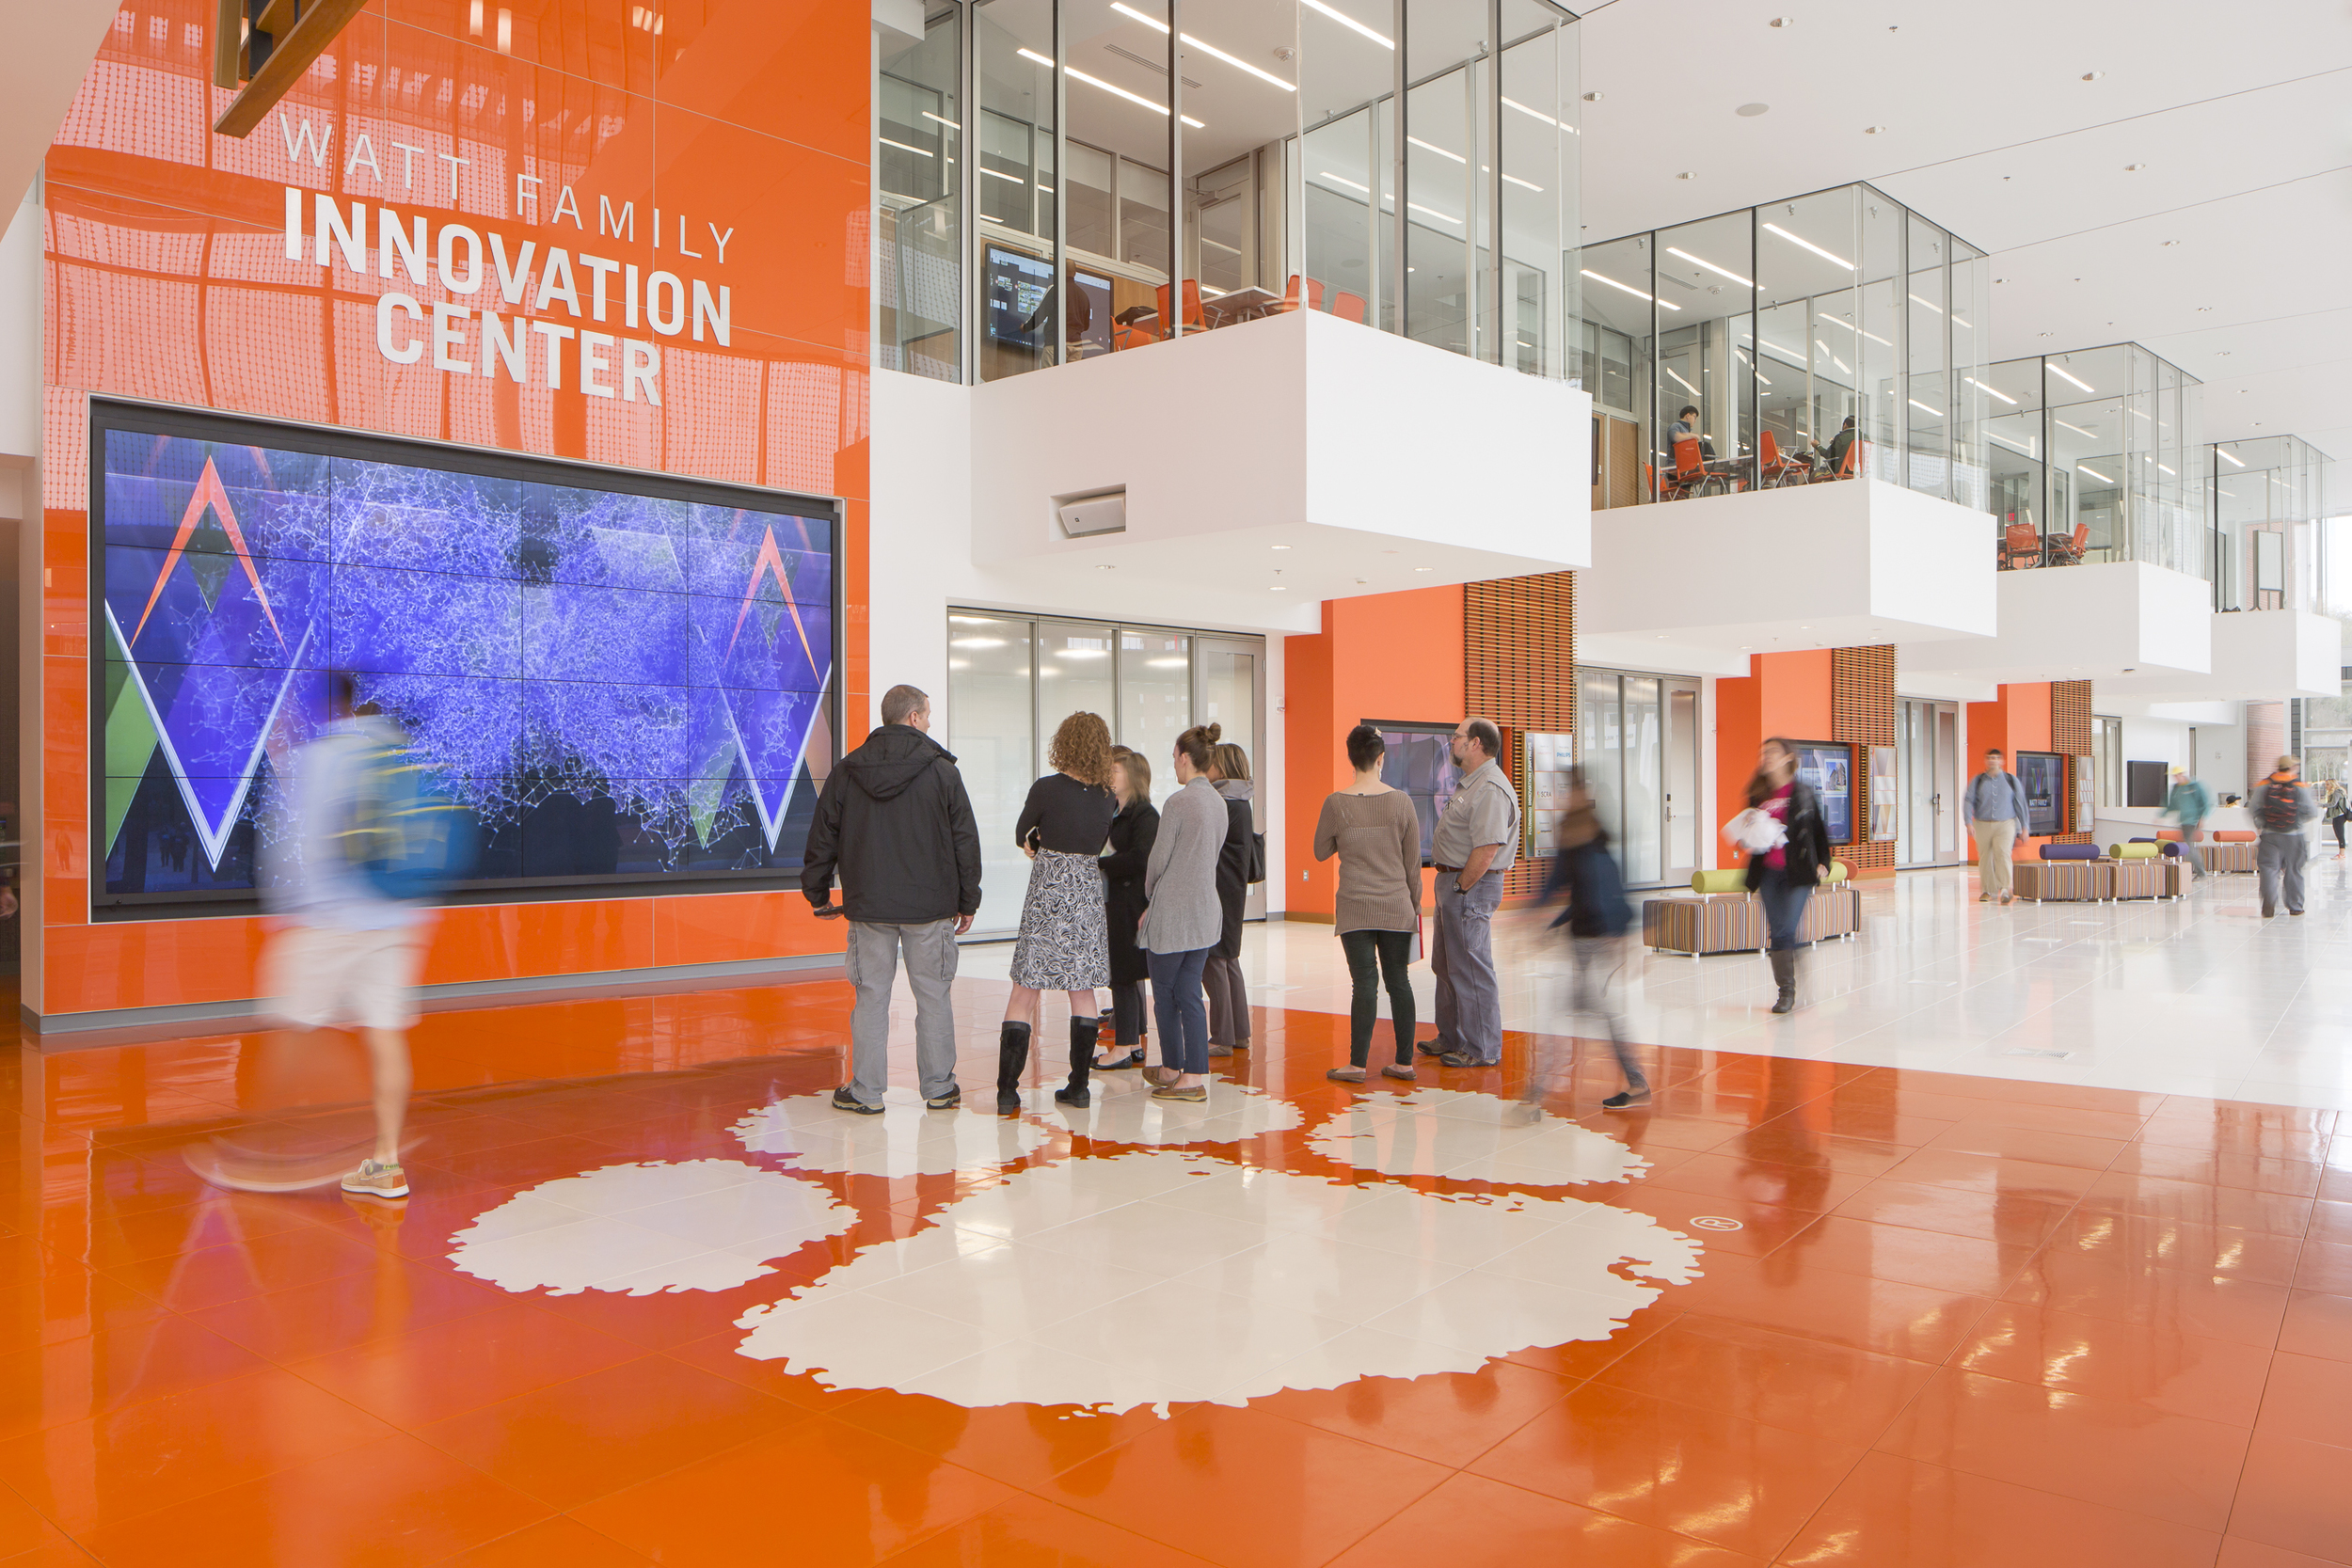 Clemson University, Watt Family Innovation Center | Photo by Michelle Litvin